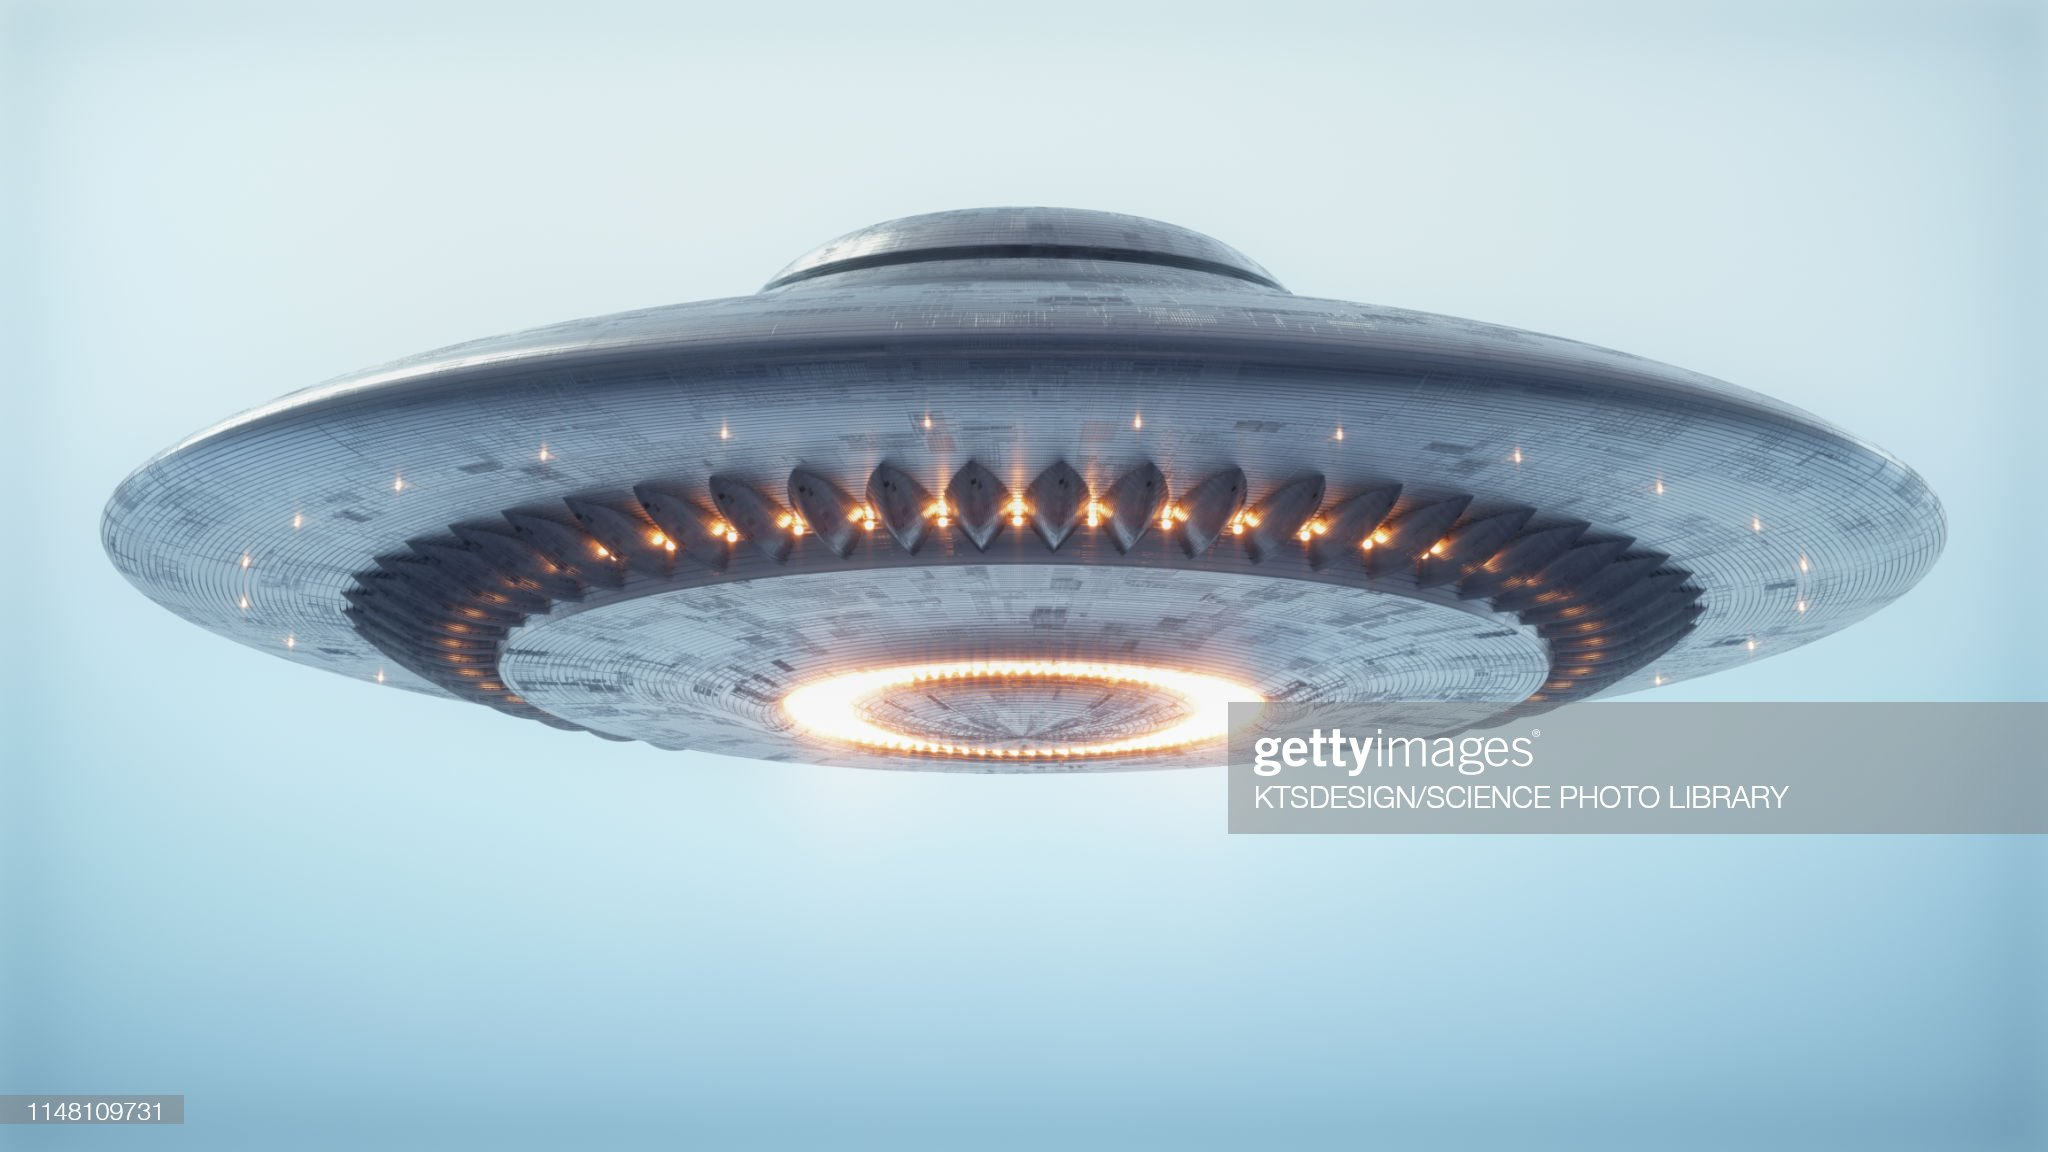 Unidentified flying object, illustration : Stock Photo